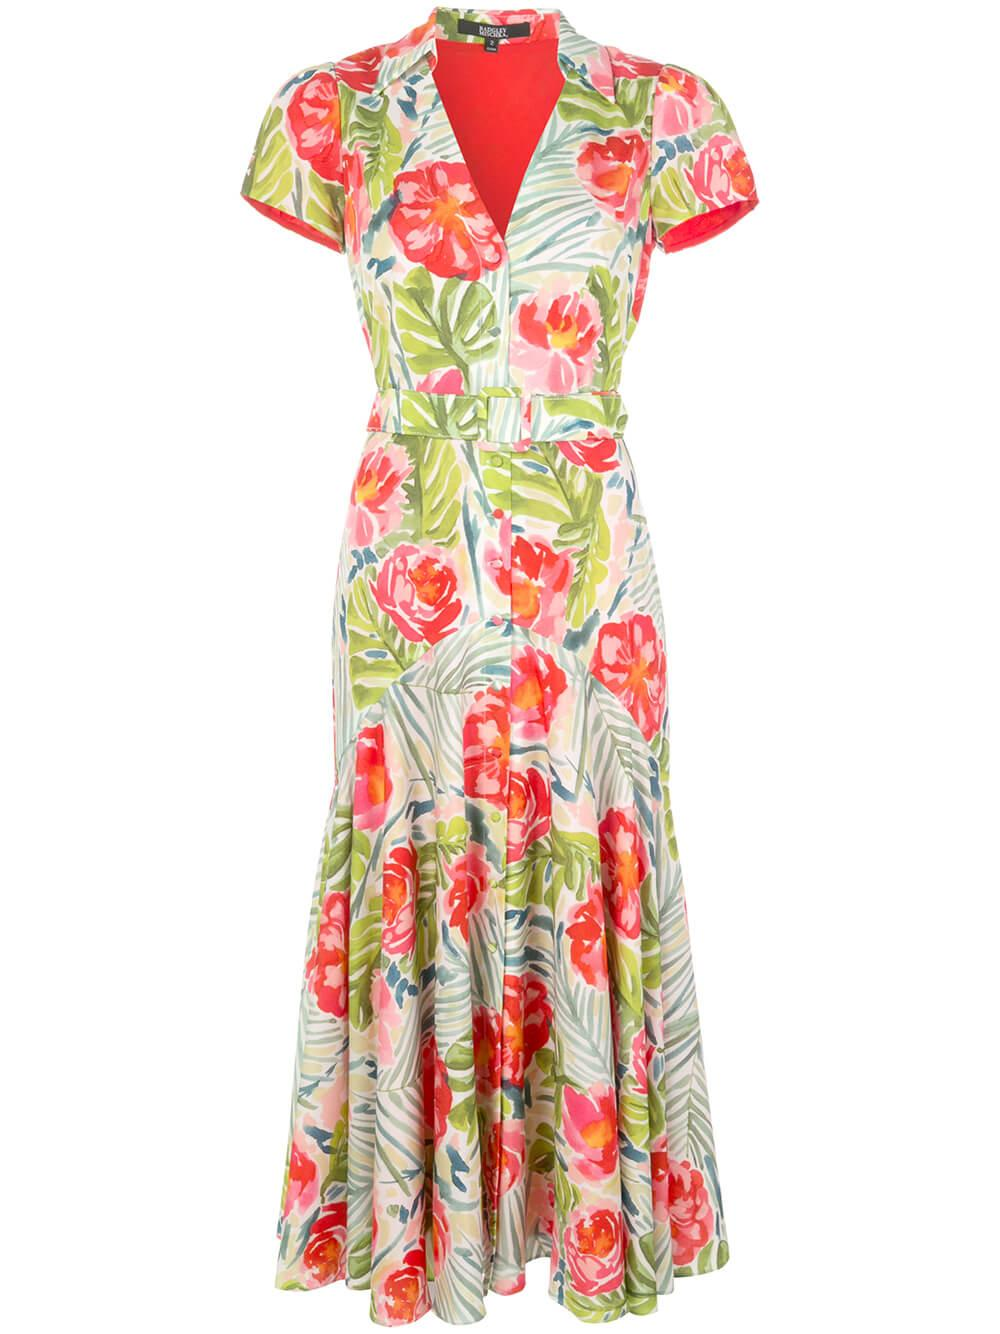 Printed Palm Day Dress Item # BSD4394